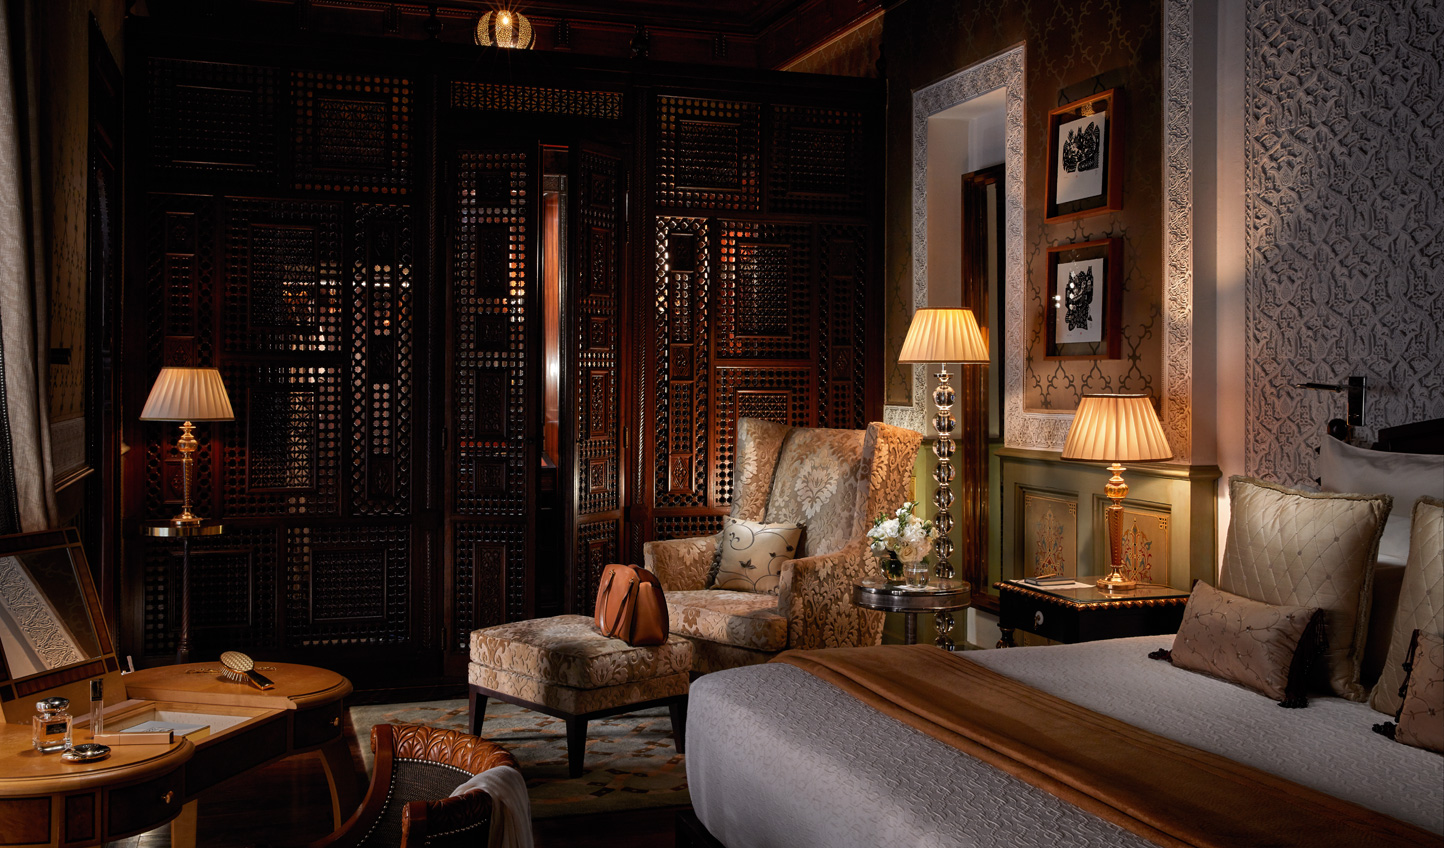 Rooms that ooze opulence and tradition in equal measure